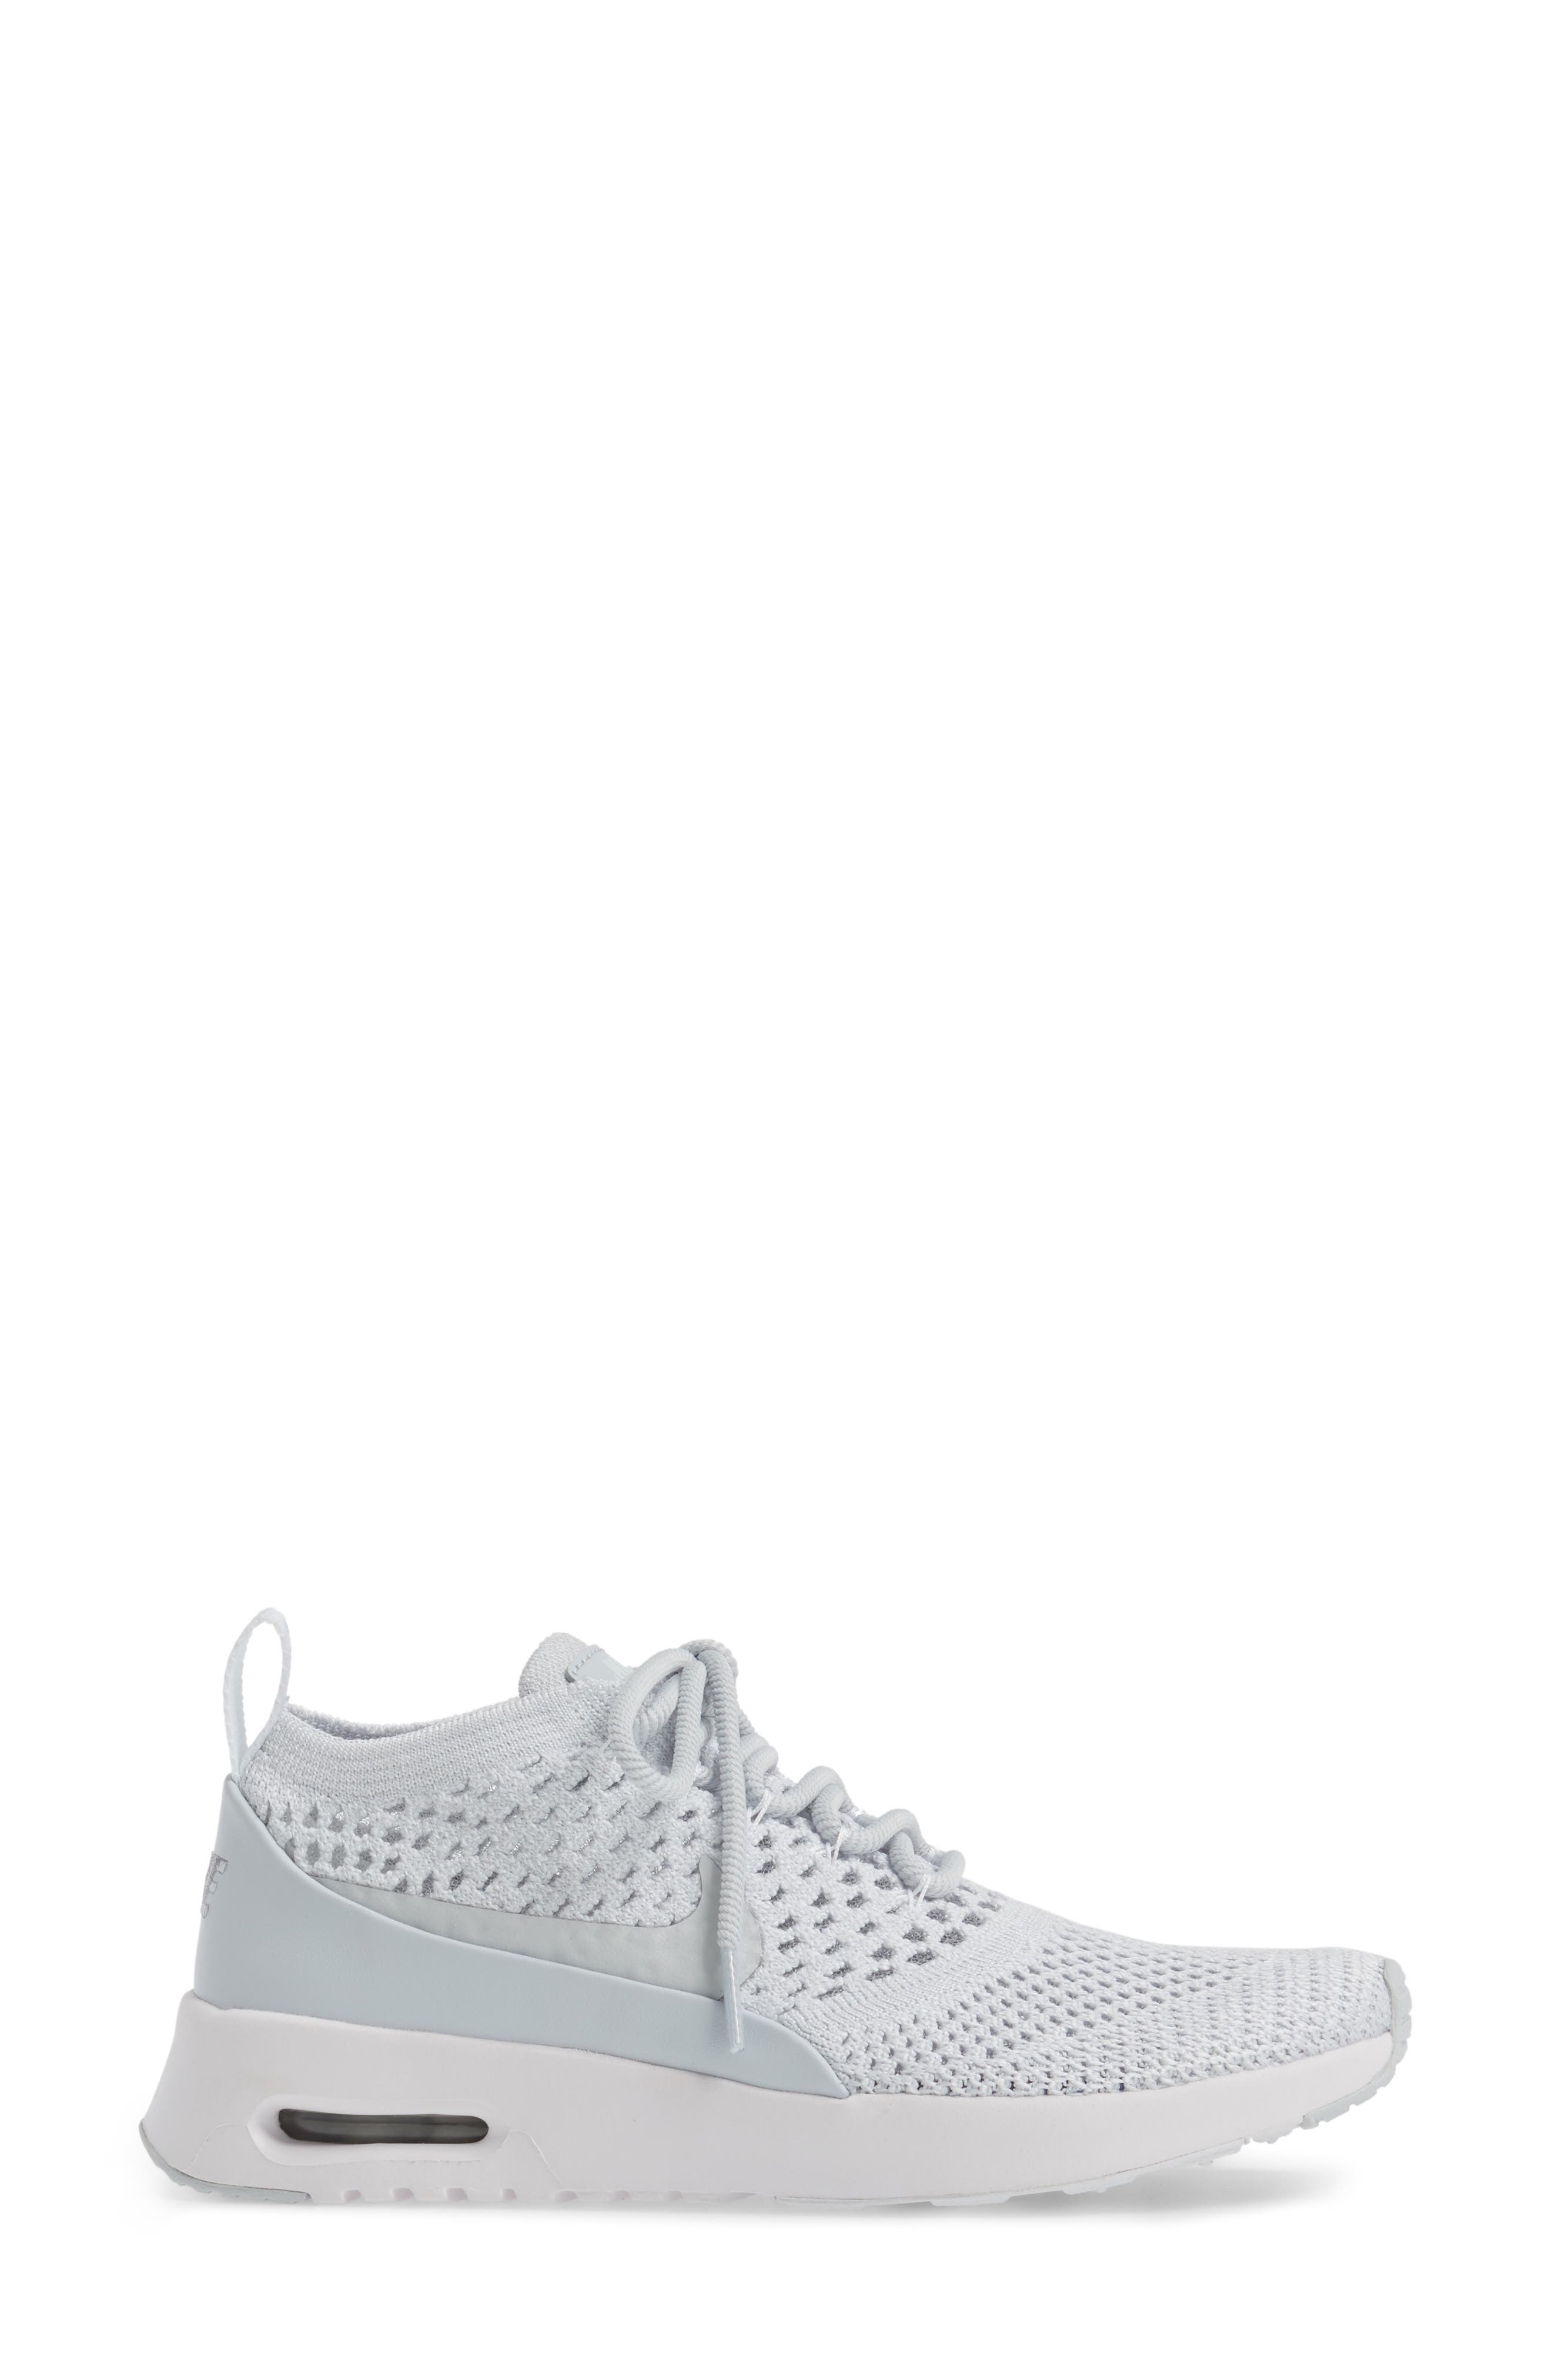 Air Max Thea Ultra Flyknit Sneaker,                             Alternate thumbnail 3, color,                             Pure Platinum/ White